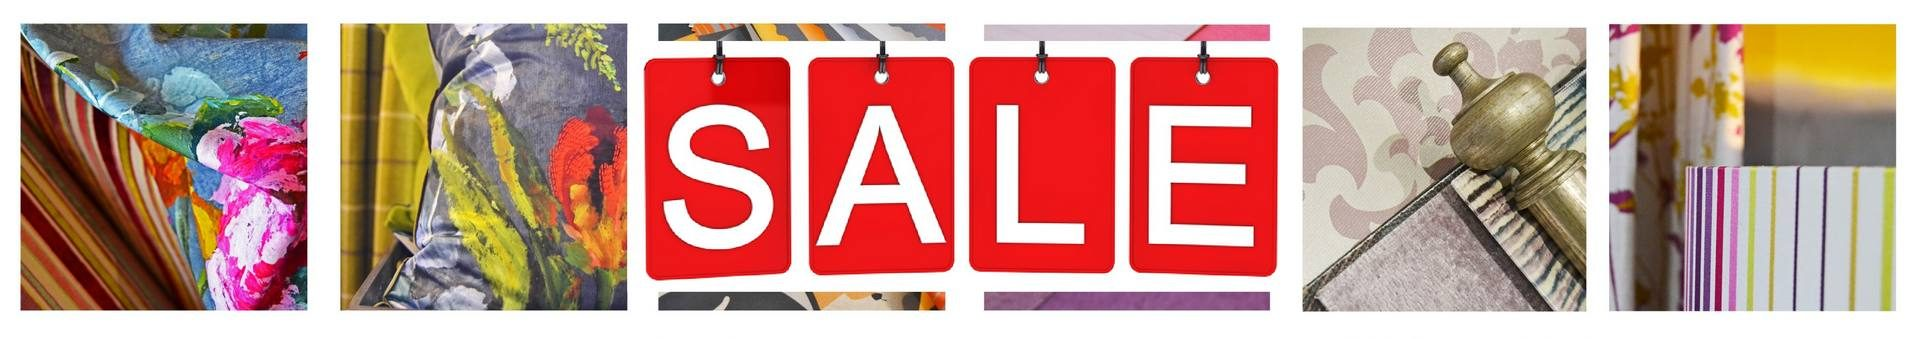 It is Sale time at Fabric Gallery and Interiors of York - banner image